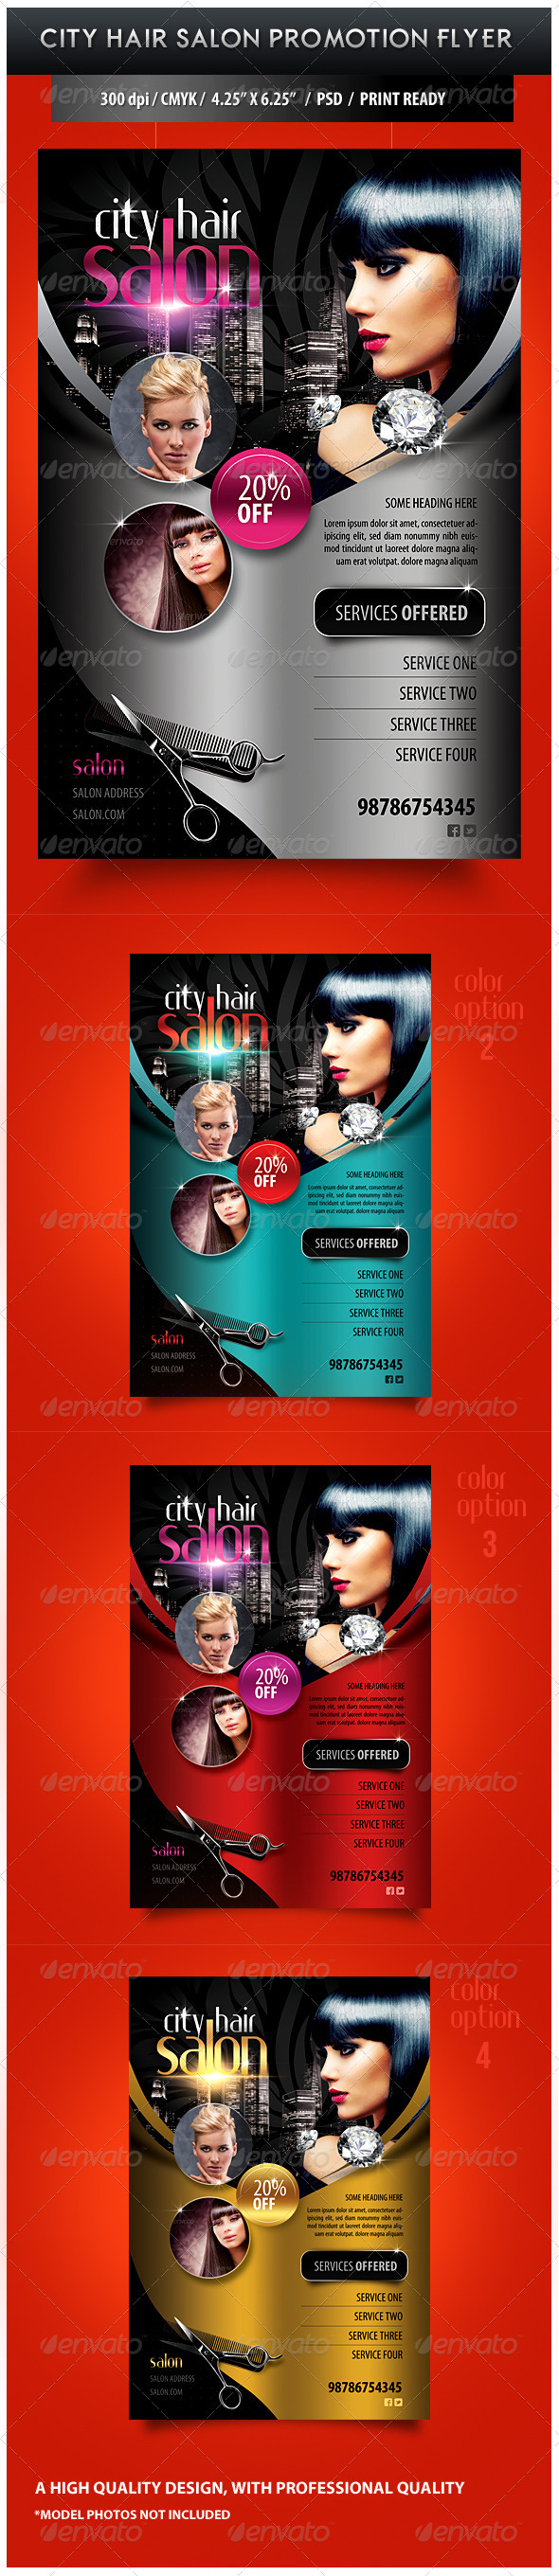 City Hair Salon Promotional Flyer - Miscellaneous Events